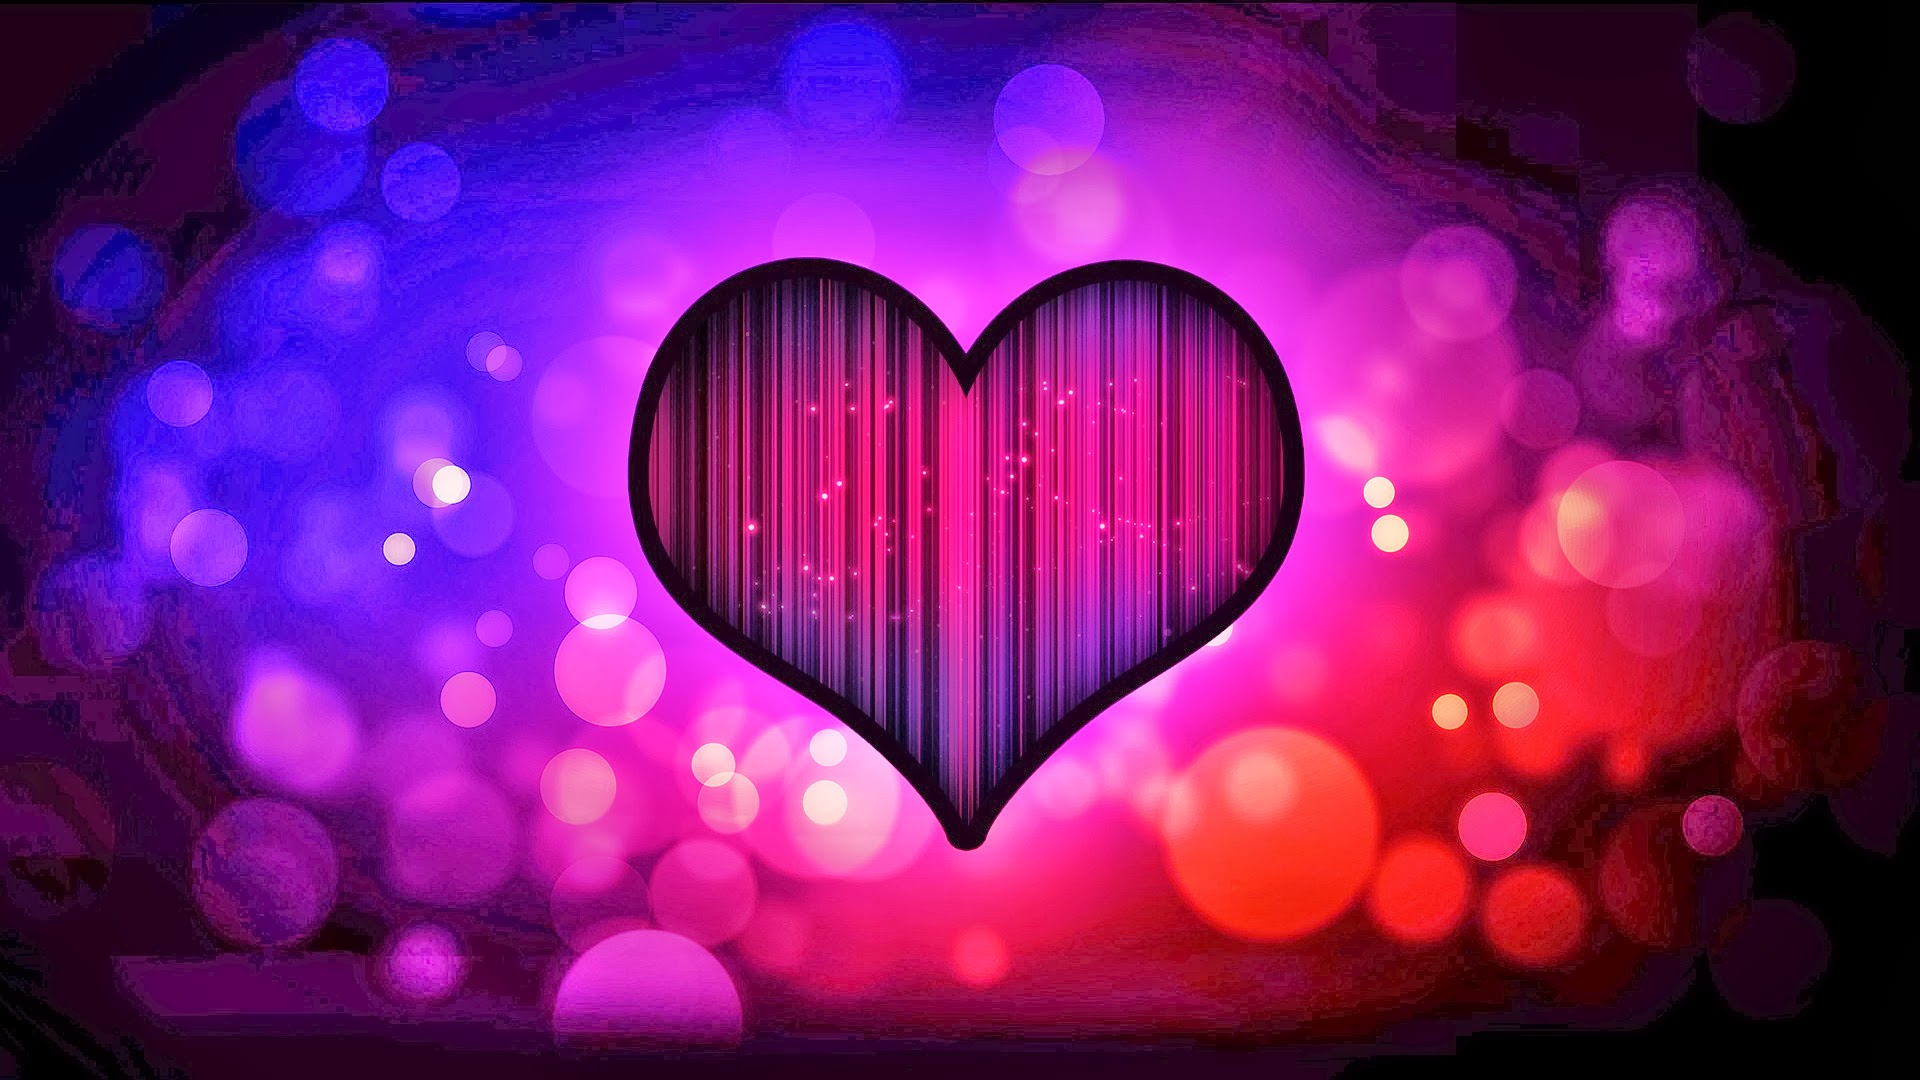 Love heart abstract hd wallpaper image photo picture - HD Wallpaper Only